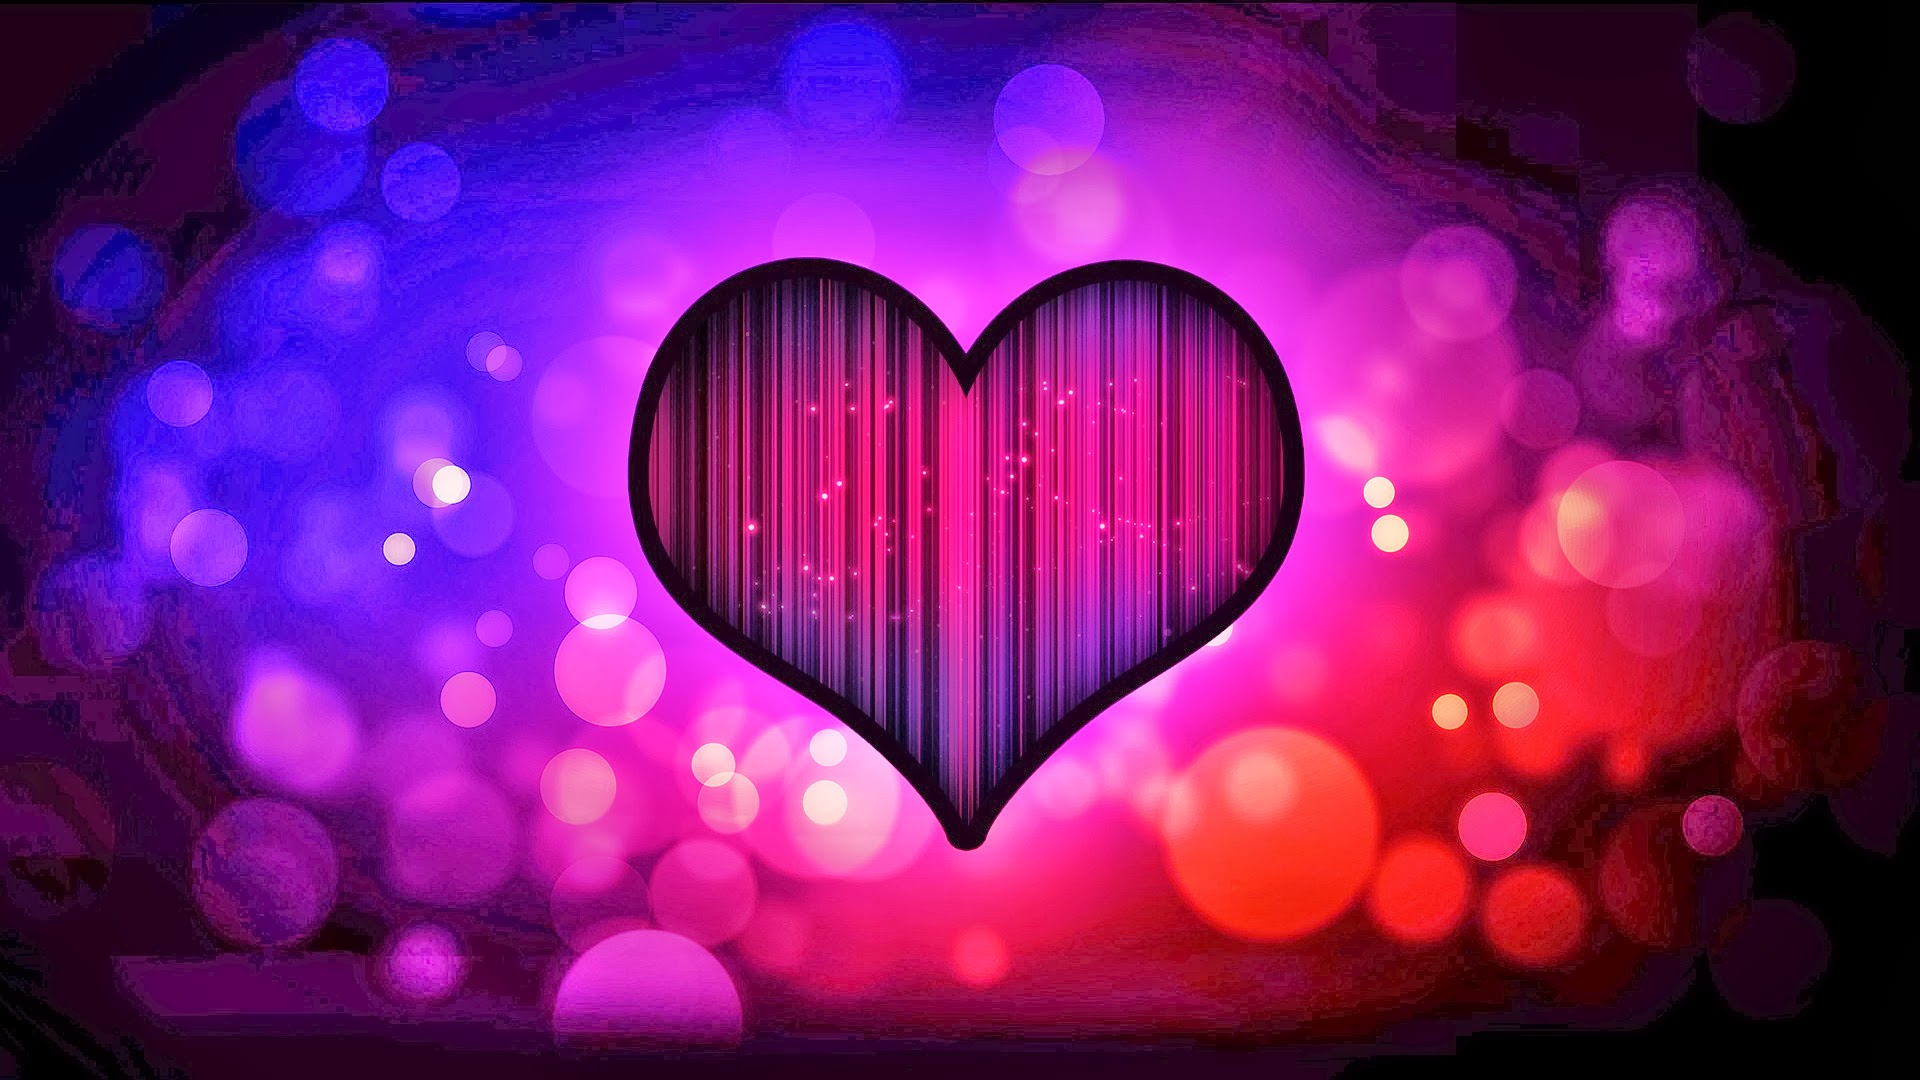 Love heart abstract hd wallpaper image photo picture - HD Wallpaper Only